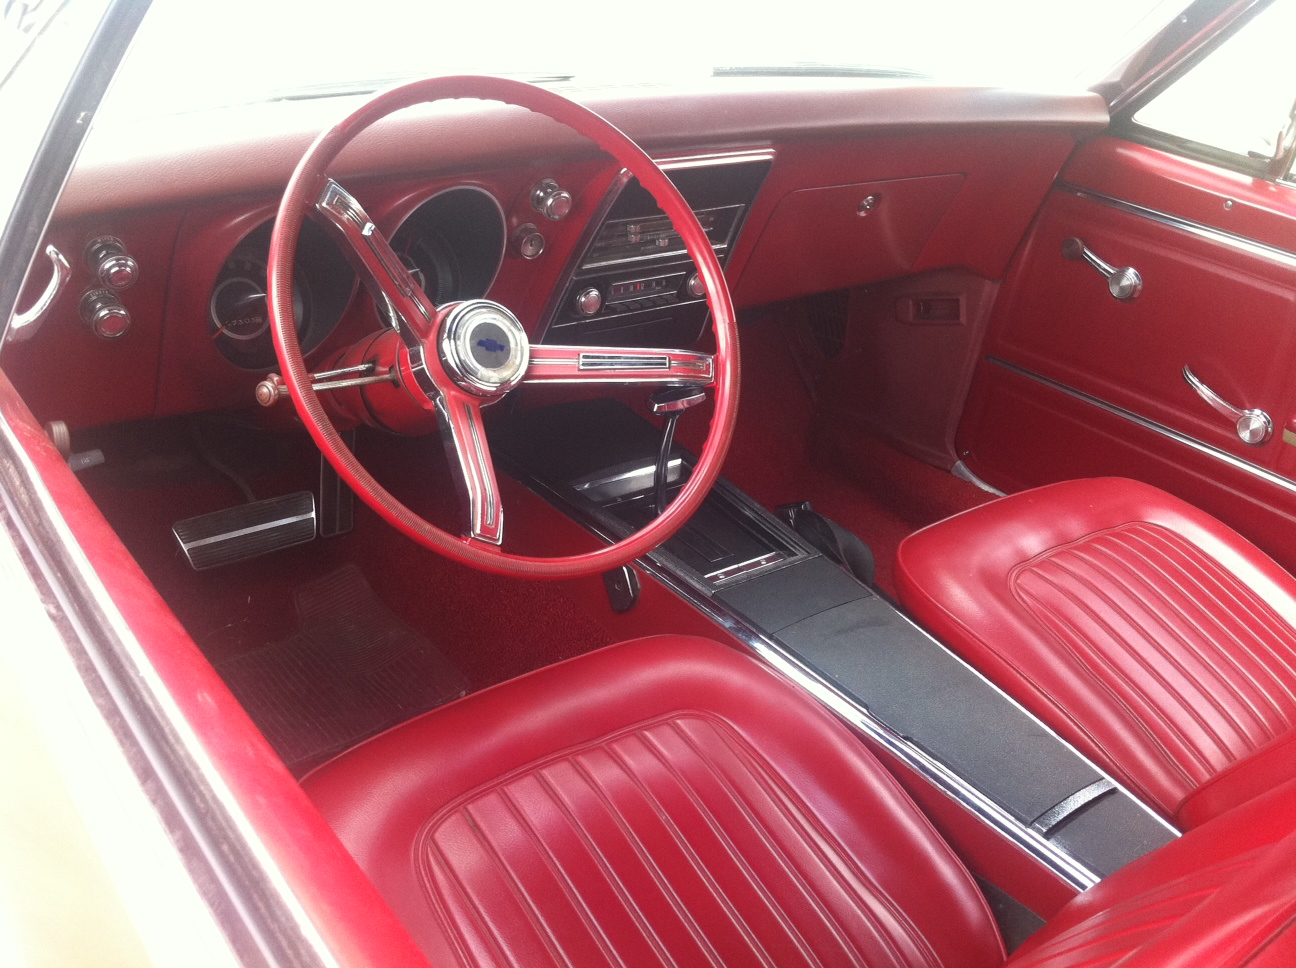 red first gen camaro in round rock at dealership atx car pictures real pics from austin tx. Black Bedroom Furniture Sets. Home Design Ideas